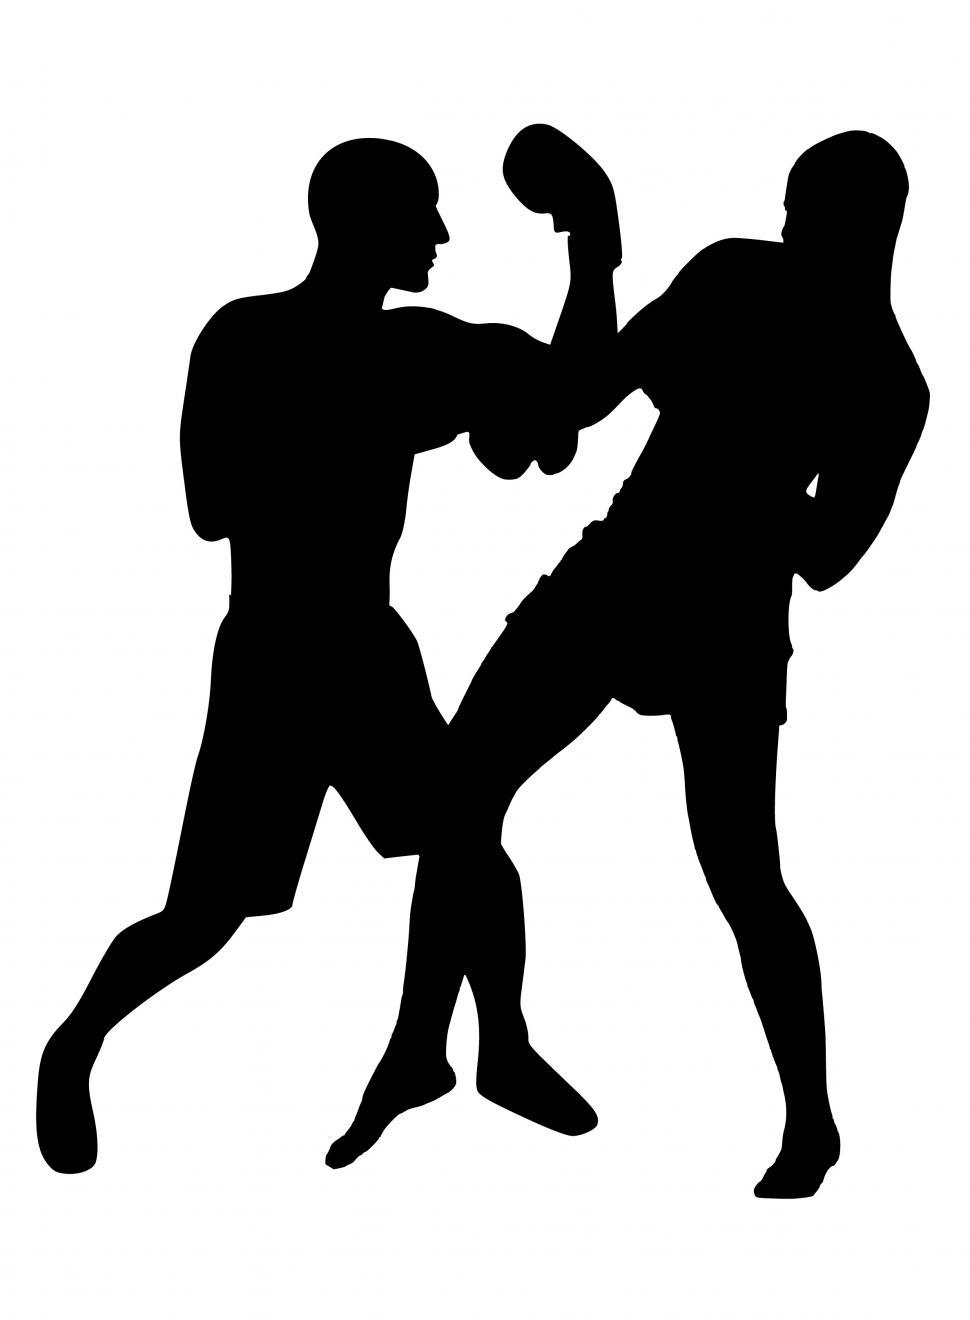 Boxing match download.